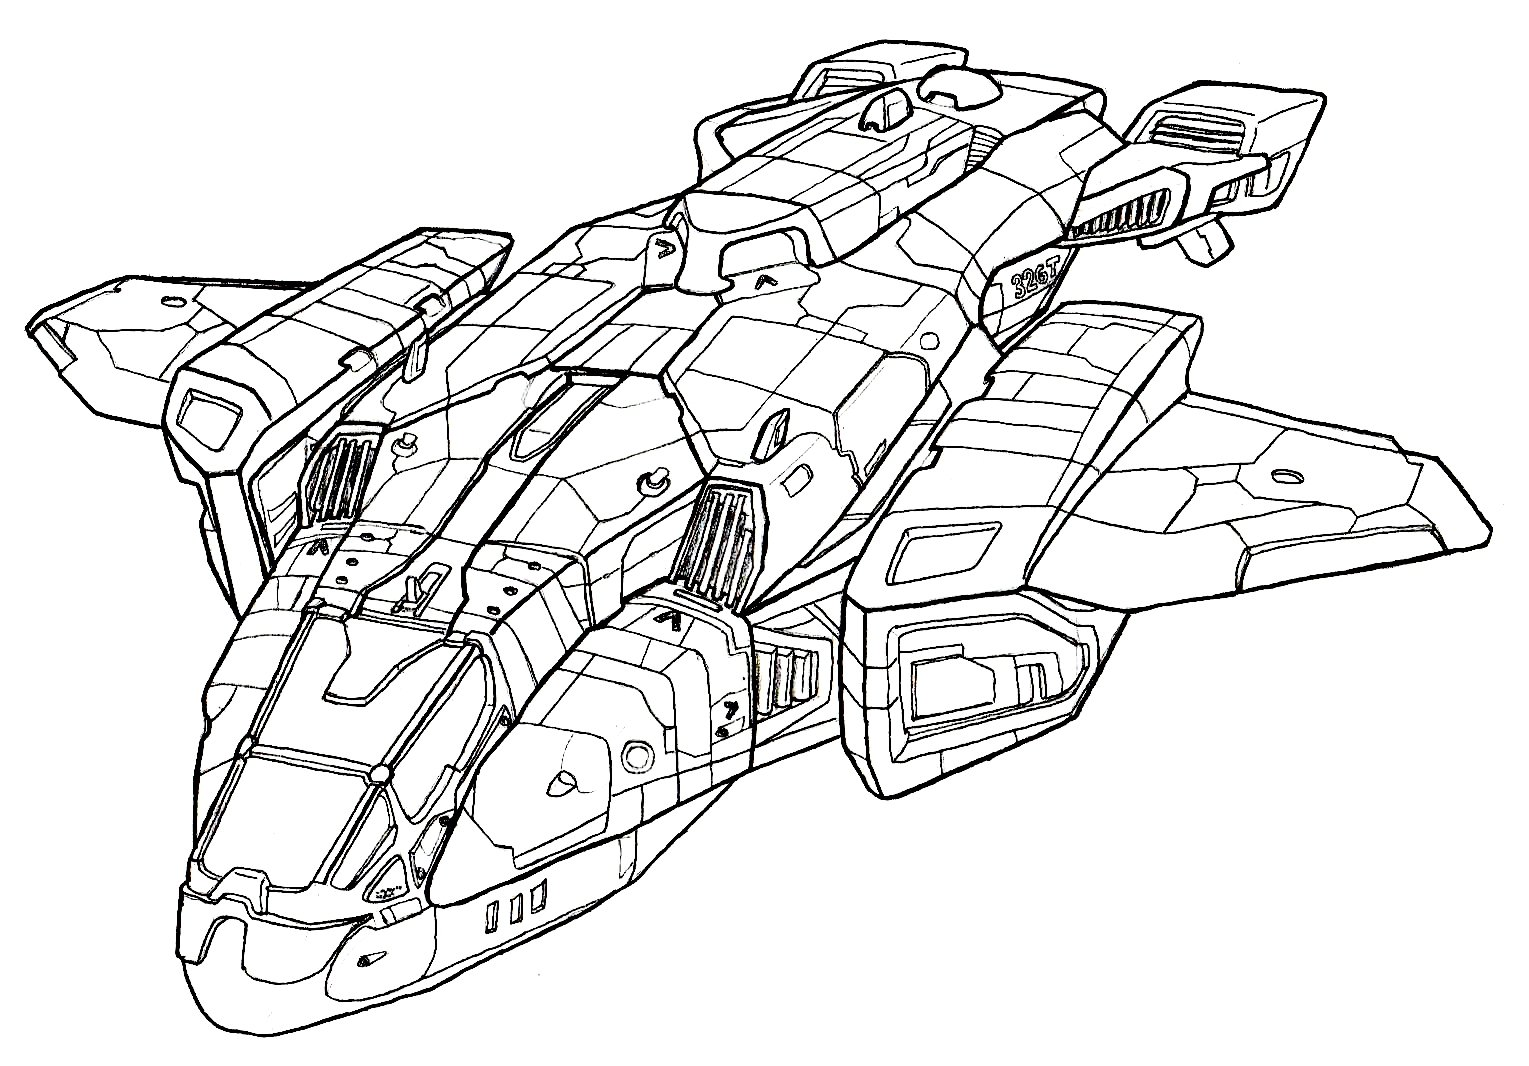 Halo warthog coloring pages